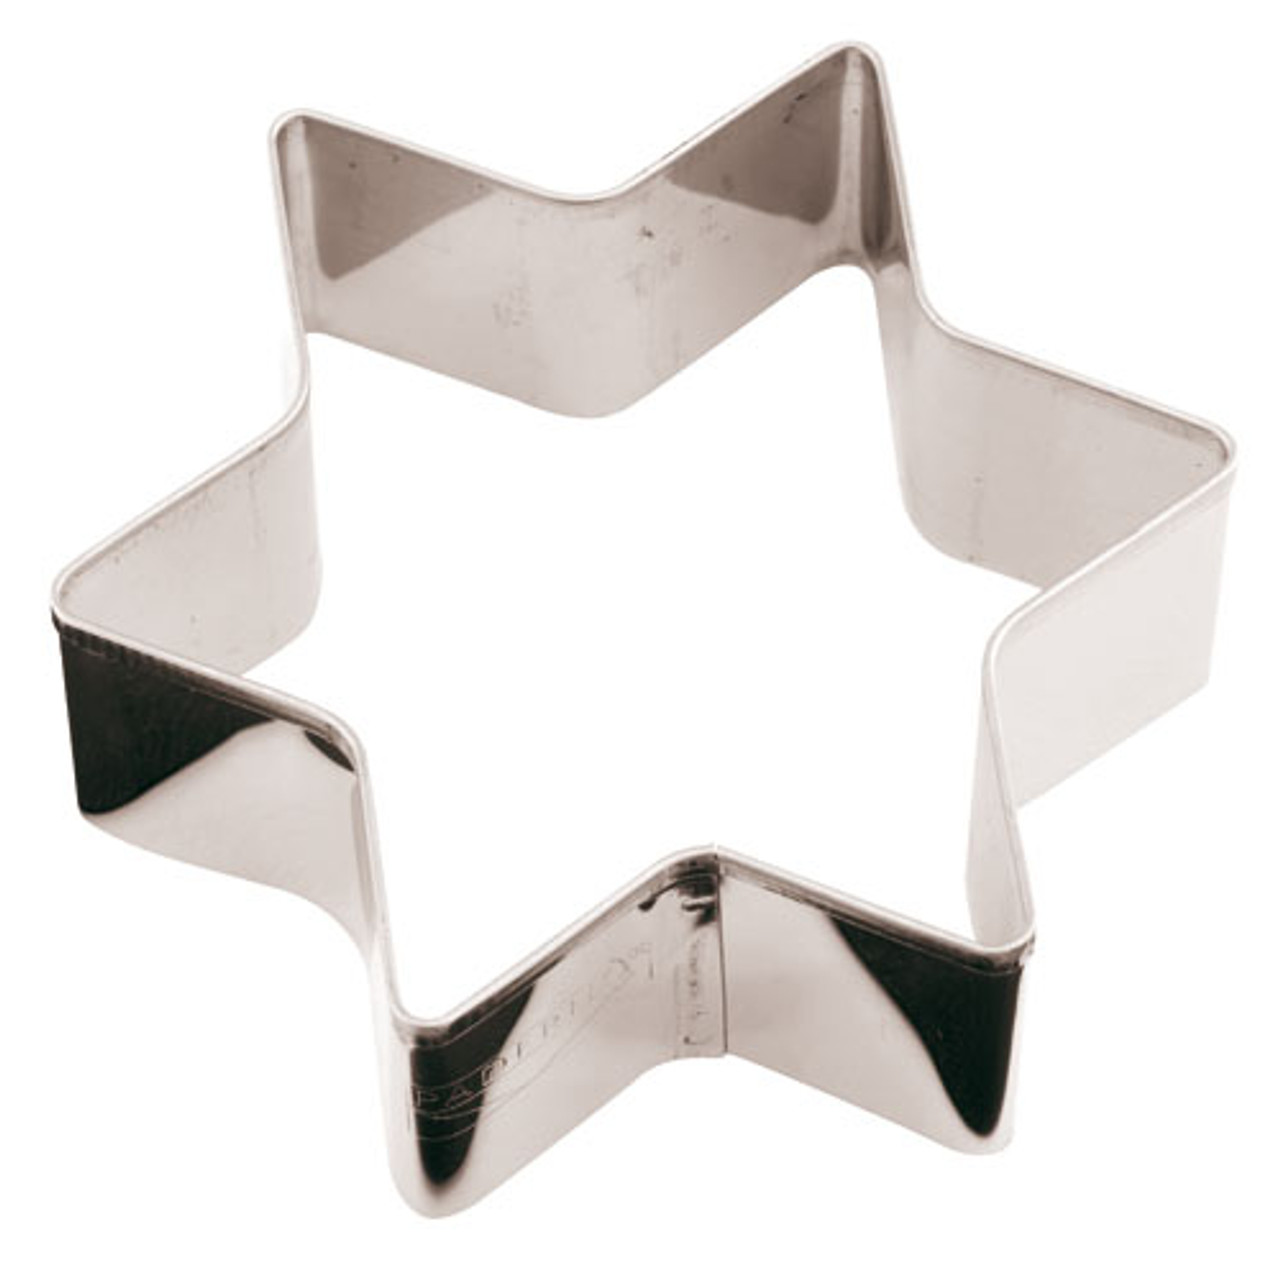 S/S Star Cookie Cutter, L 3.125 x W 3.125 x H 1.125